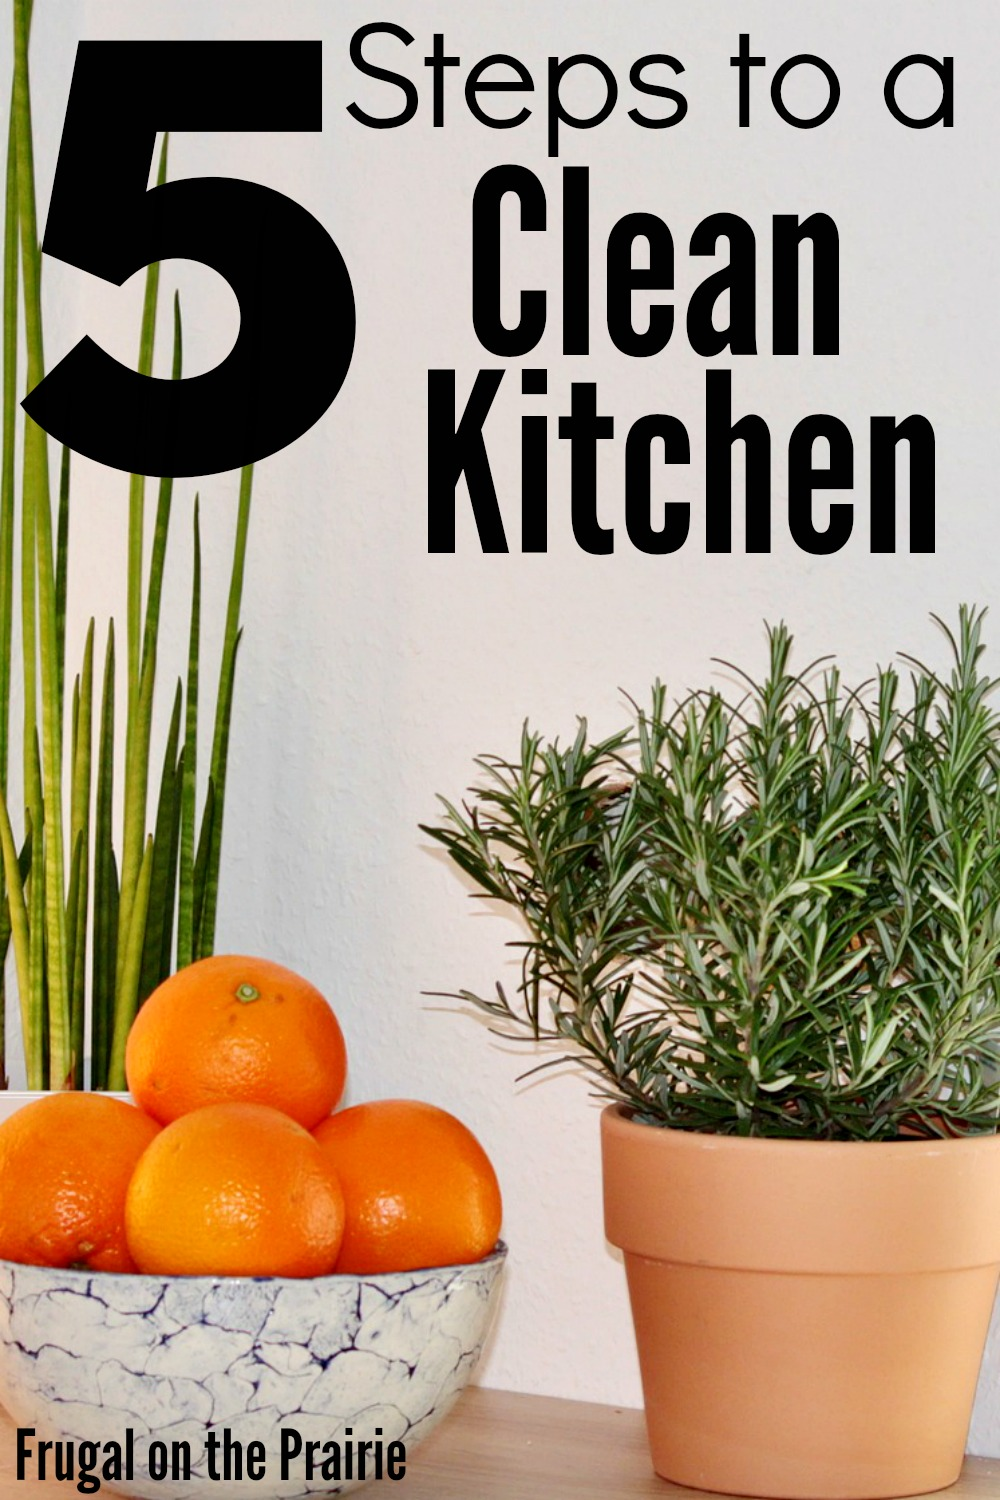 Feel like you're constantly doing dishes? Follow these 5 easy steps for the fastest way to clean your kitchen!